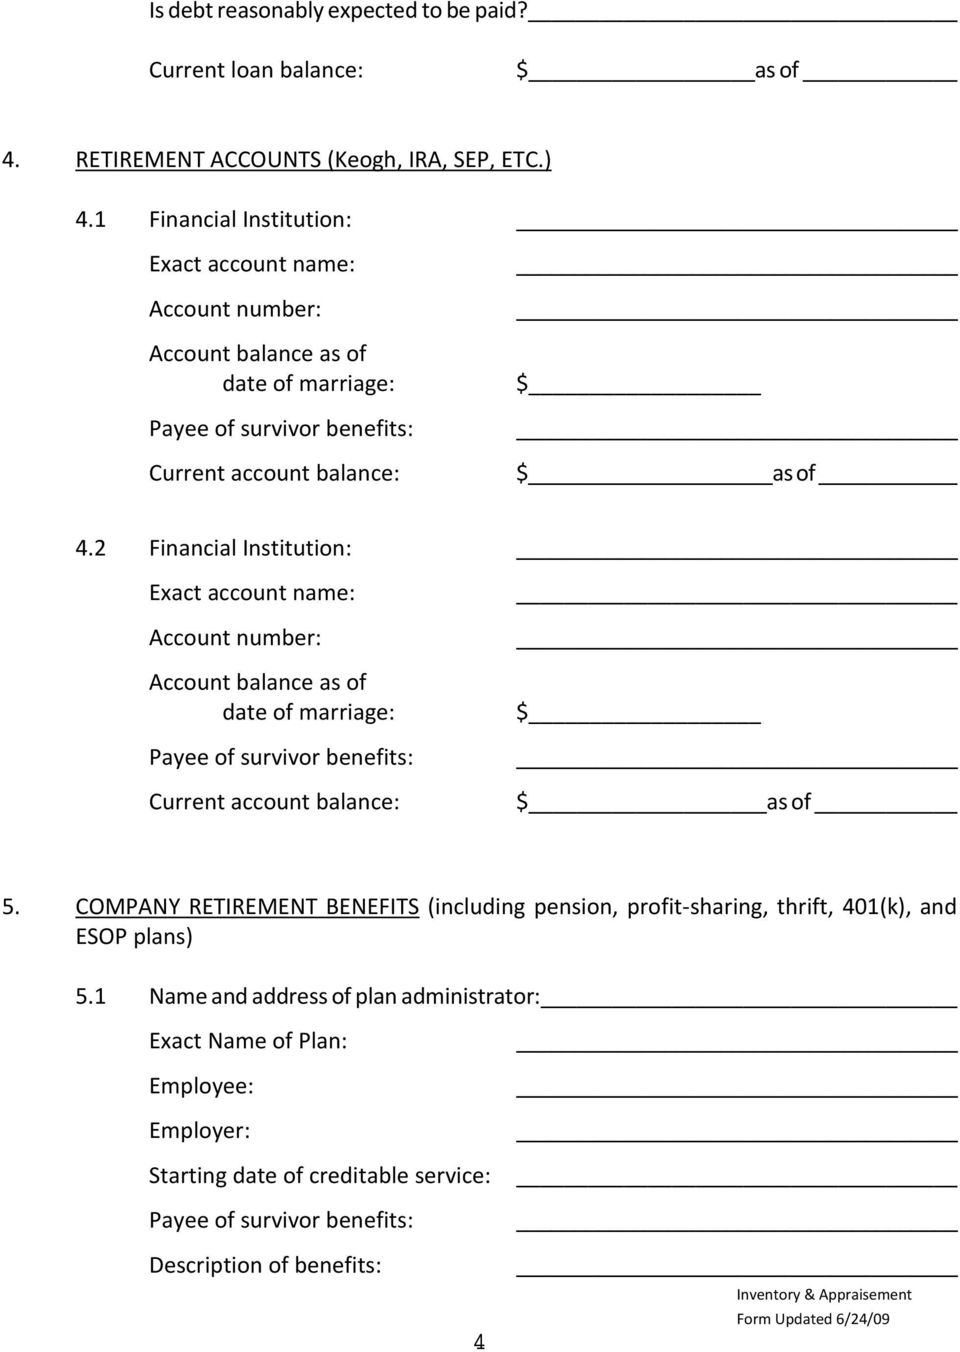 2 Financial Institution: _ Exact account name: Account balance as of date of marriage: Payee of survivor benefits: Current account balance: _ $ $ as of 5.